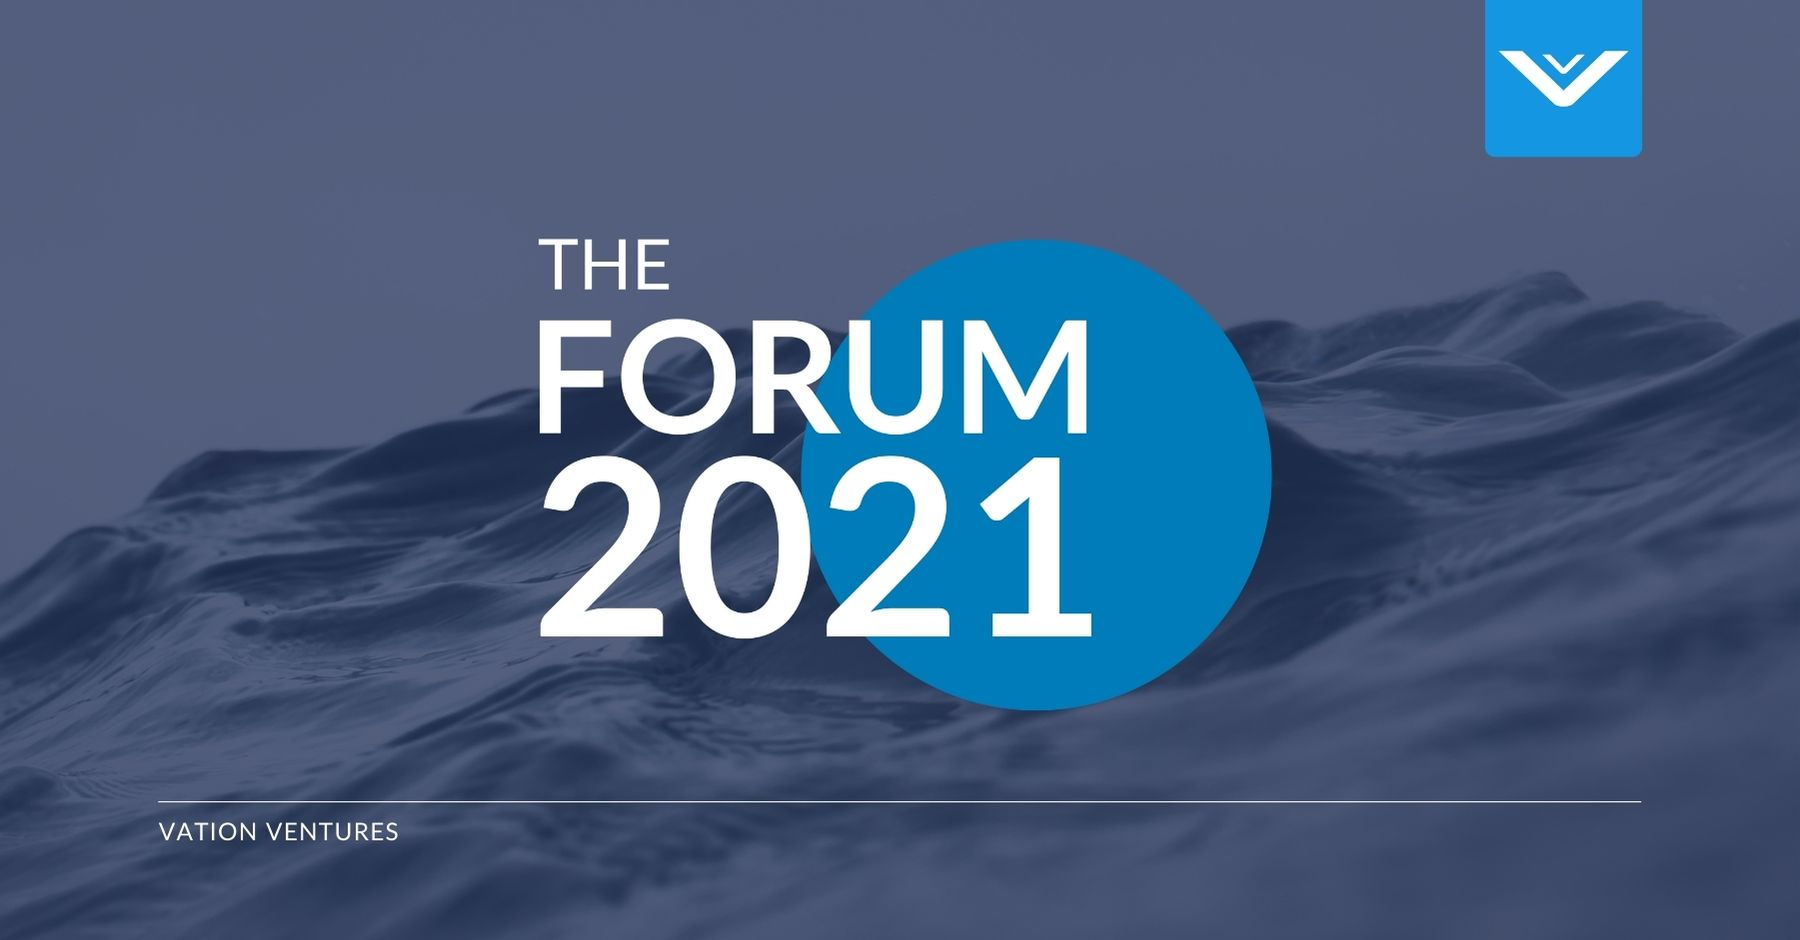 We're Better Together: The Forum 2021